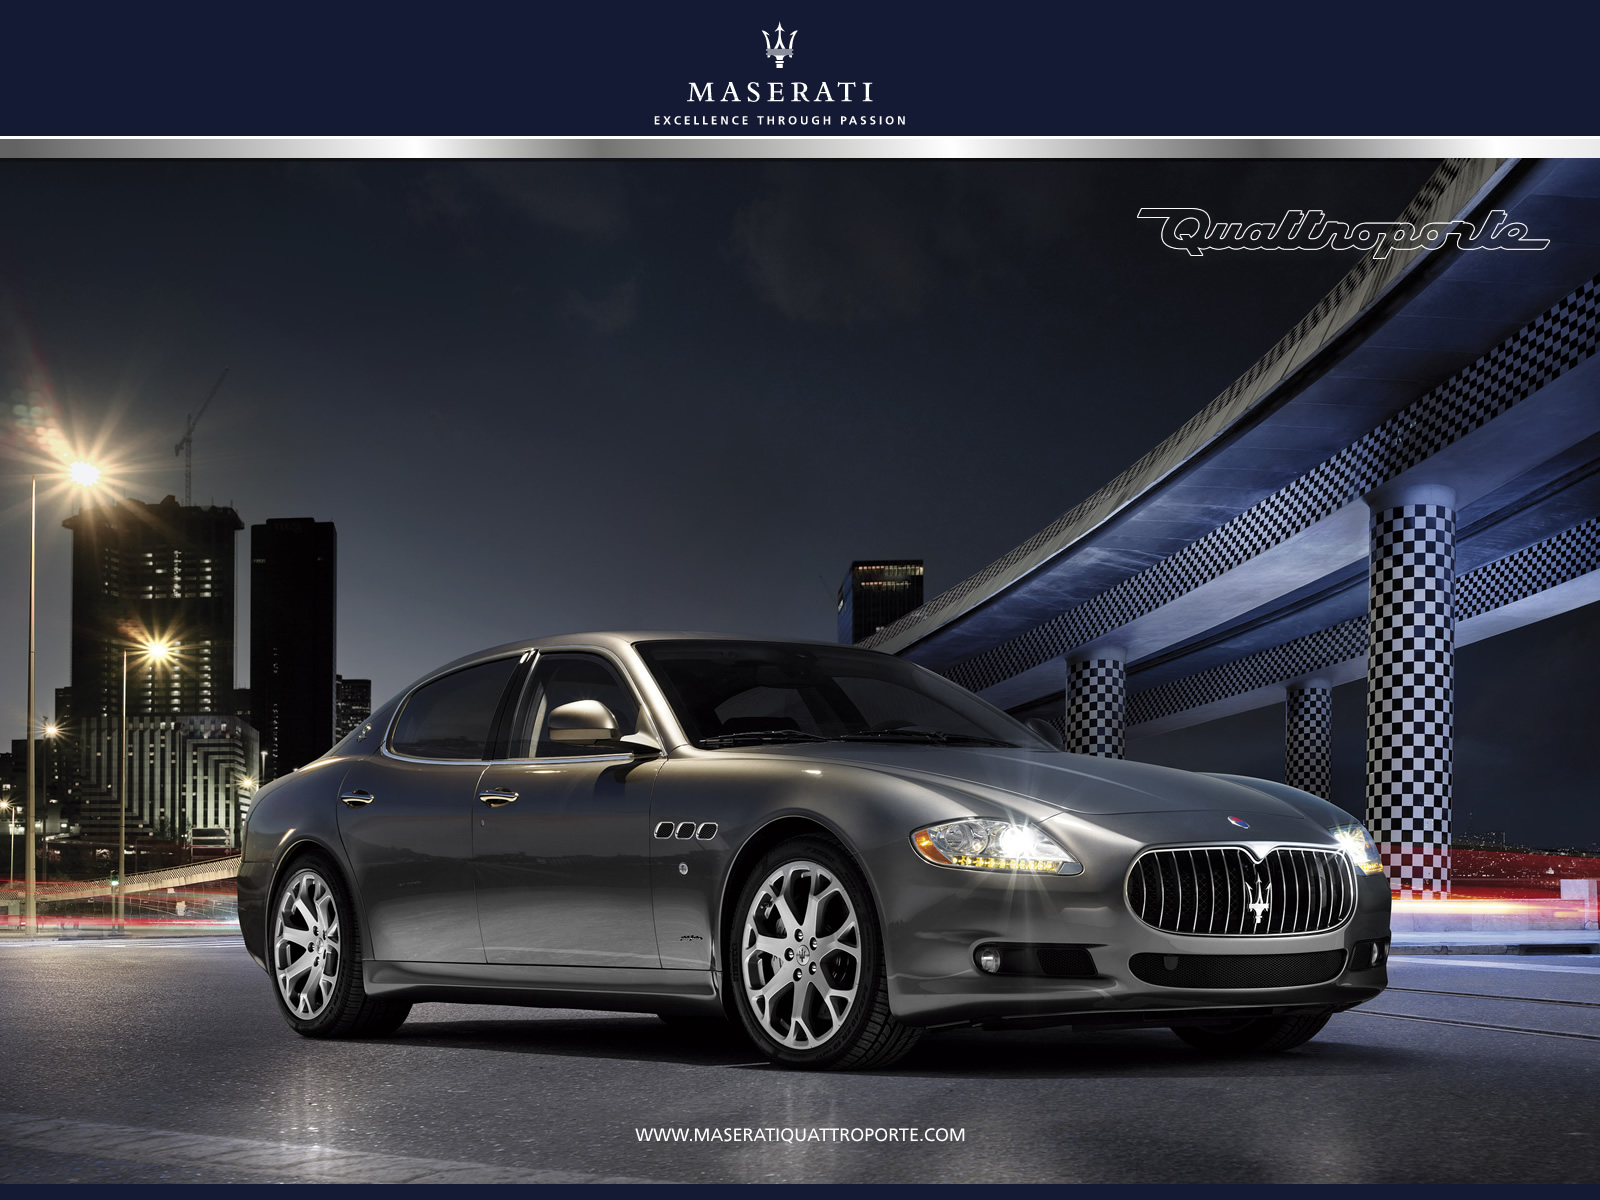 Maserati Logo Wallpaper 1600x1200